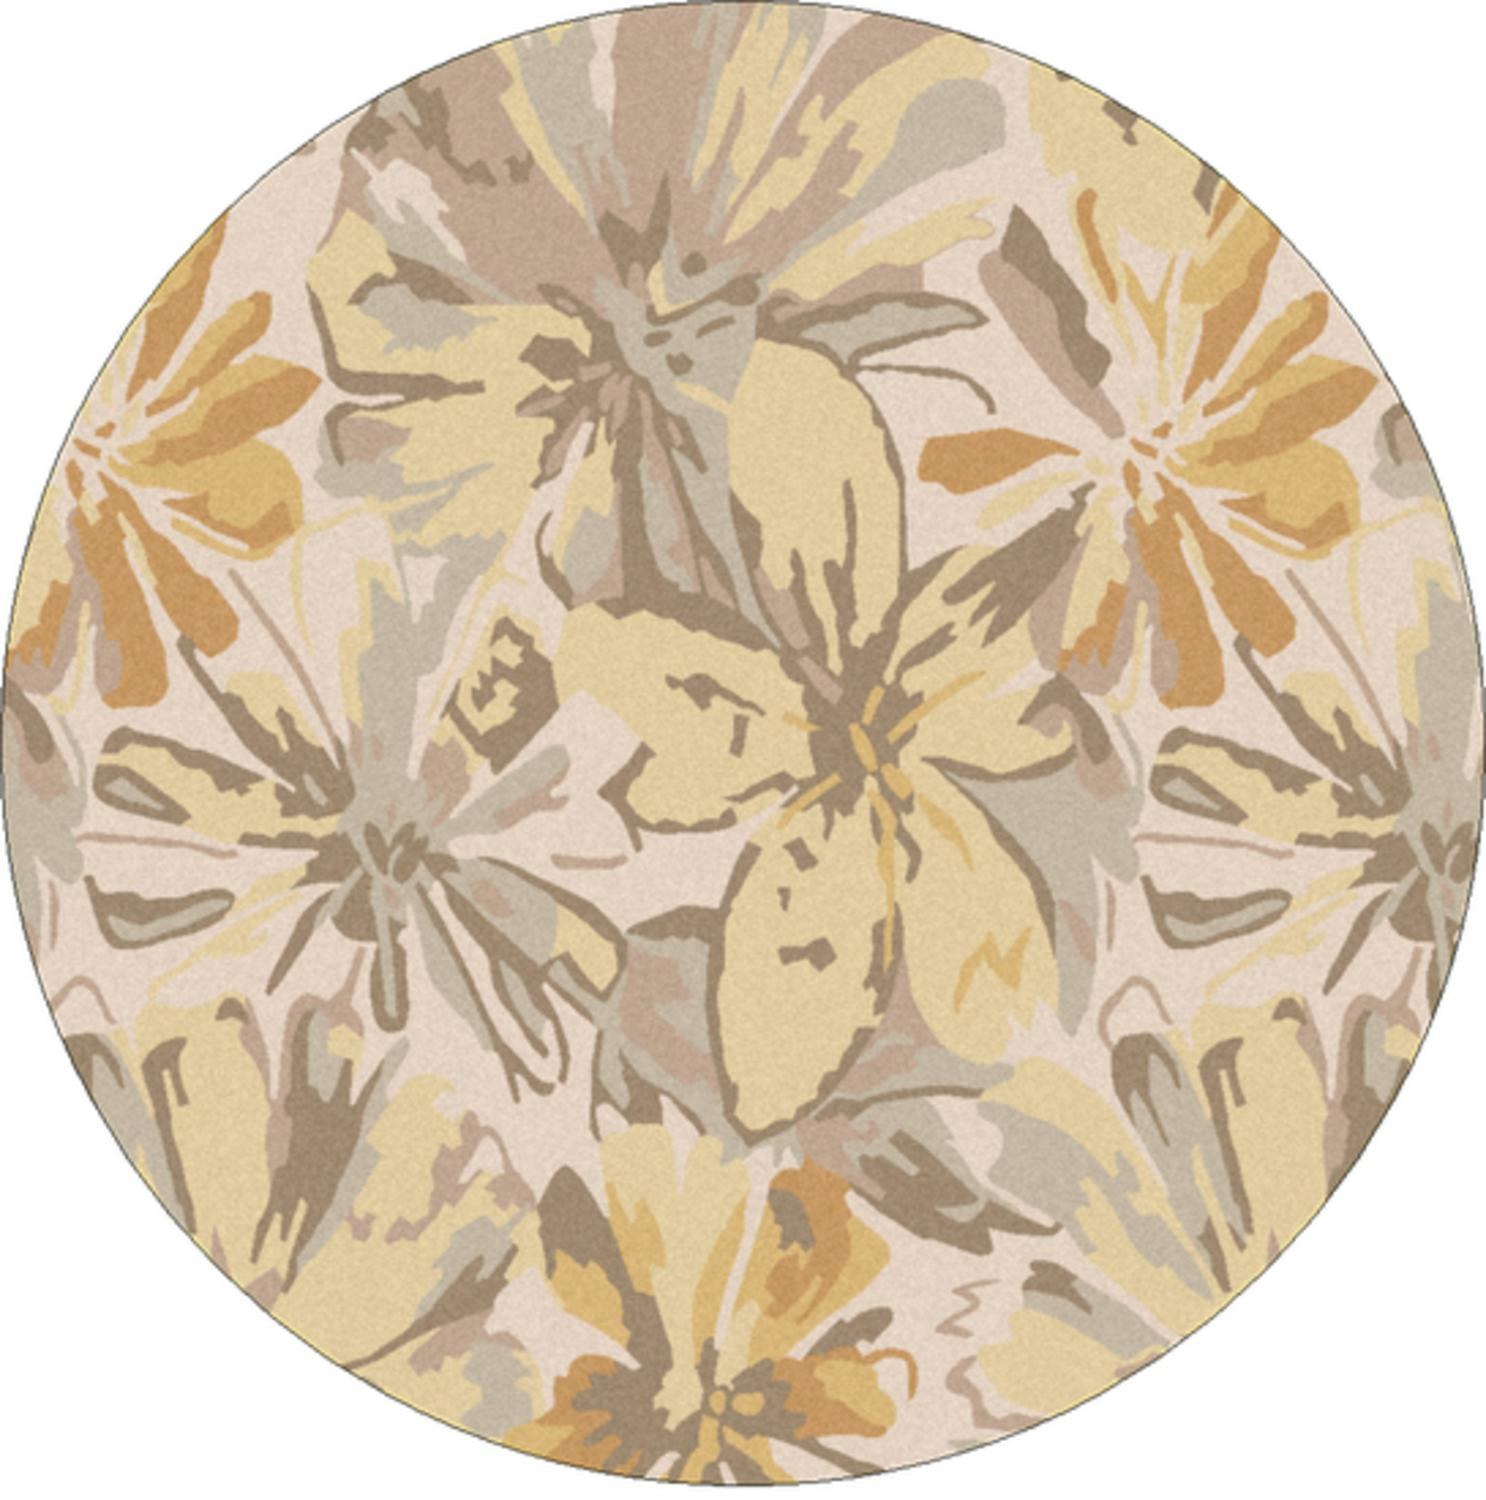 9.75' Daisy Dream Gray and Yellow Flower Round Wool Area Throw Rug